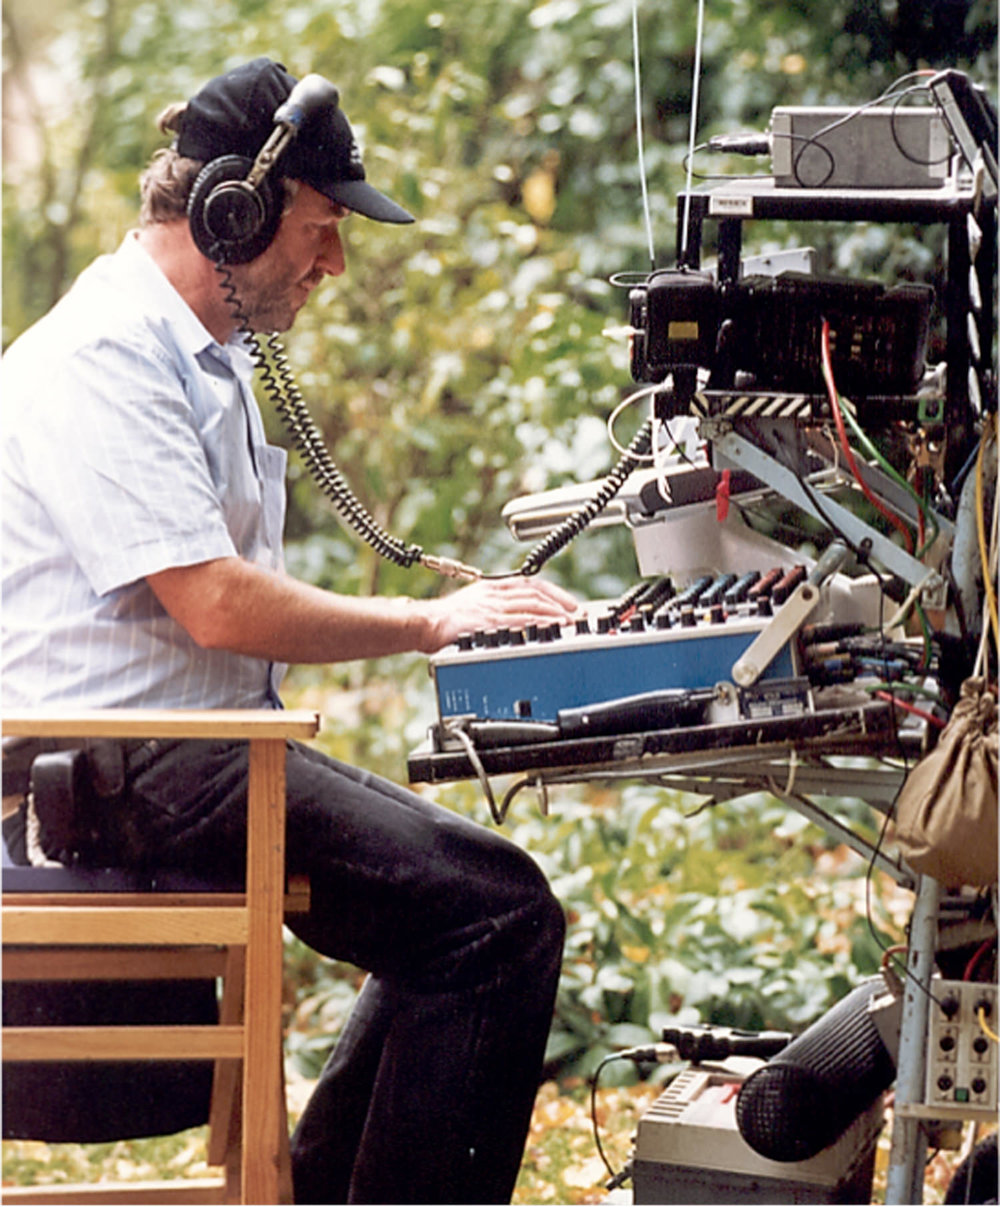 Recording Kangaroo Jack 2003 in Sydney again on the Audio developments Mixer and Fostex PD-2. The technology mounted on the sound cart would be modified according to the requirements of the job.